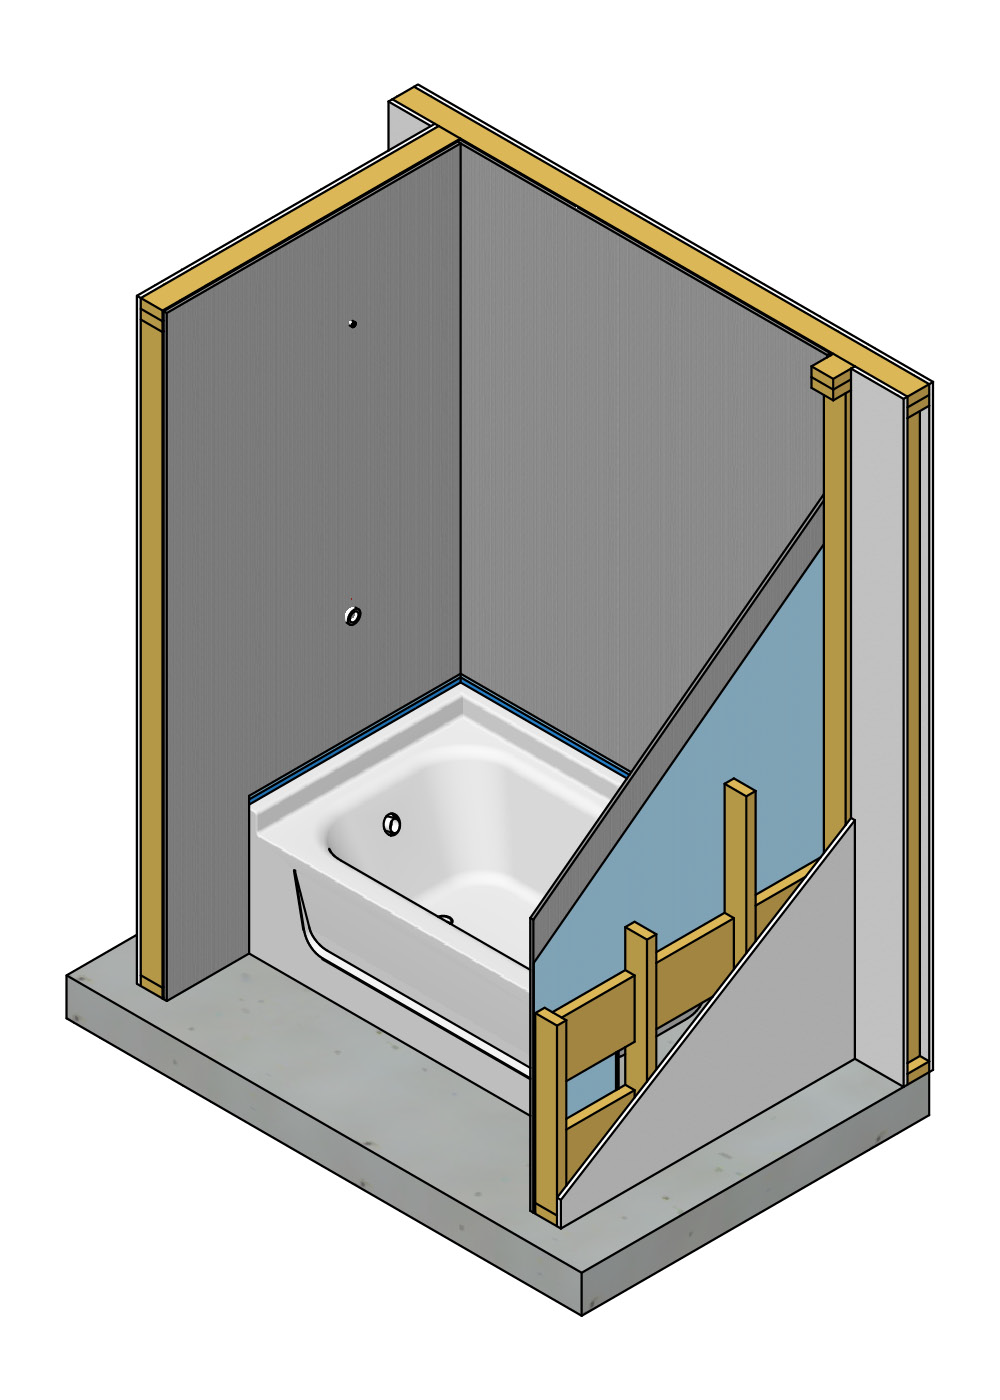 Cement Board Installed to a Tub Surround. This image shows the correct installation of cement board behind a tub enclosure